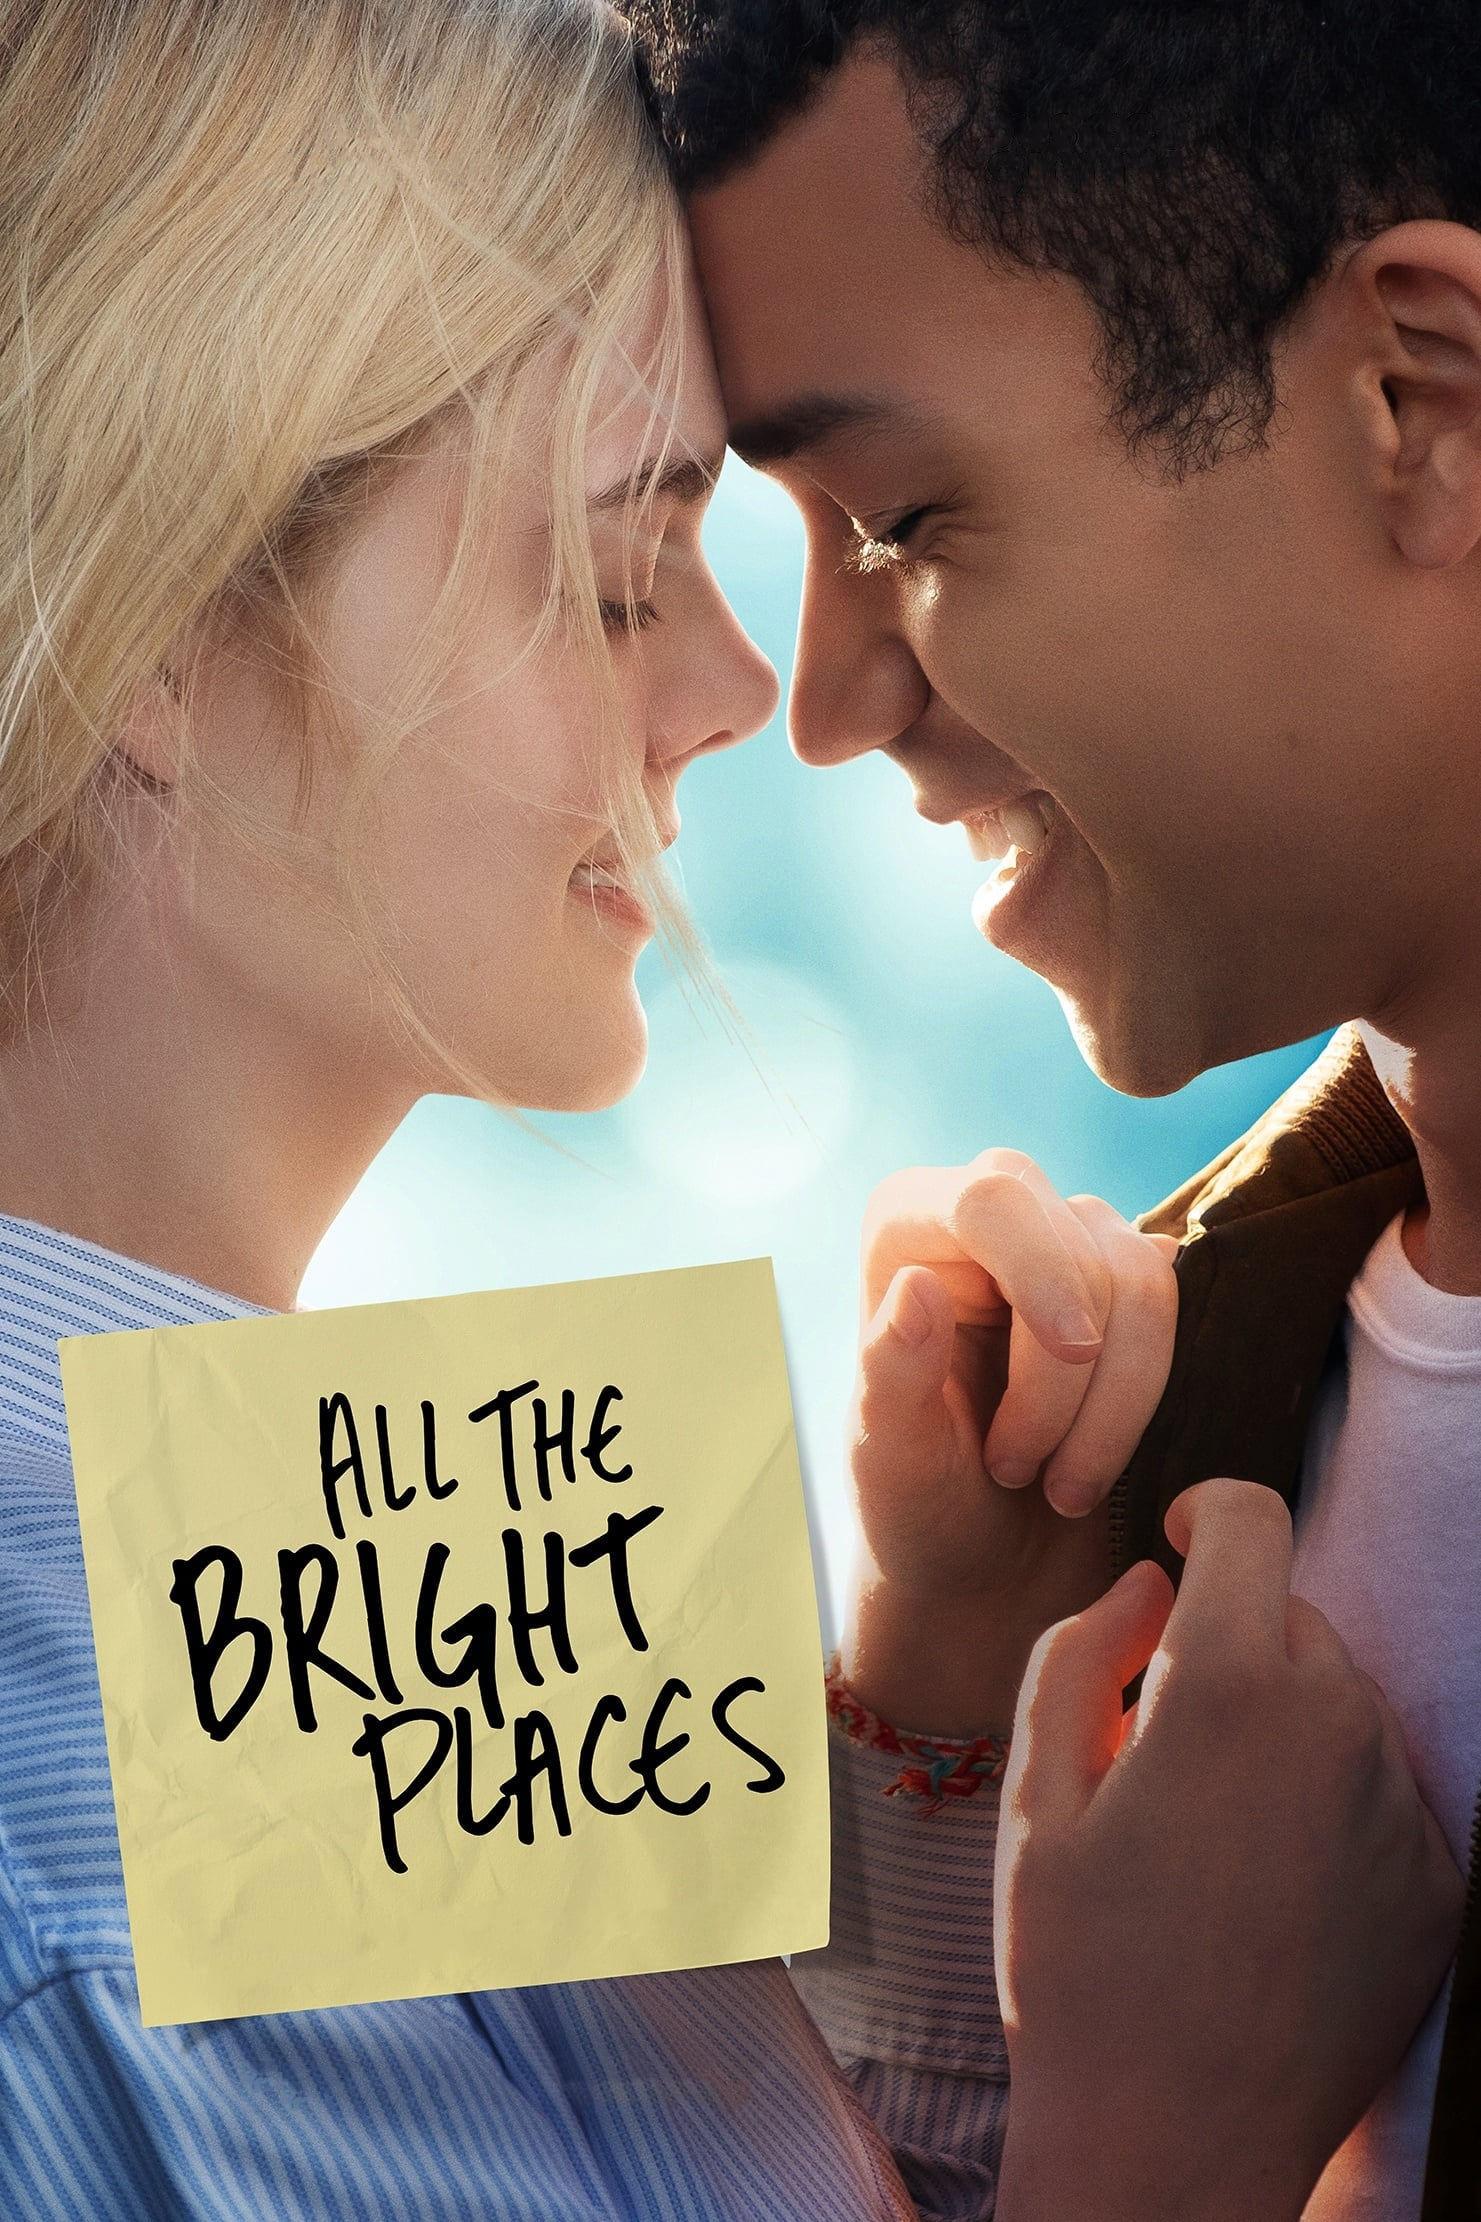 download or watch All the Bright Places full movie online free Openload